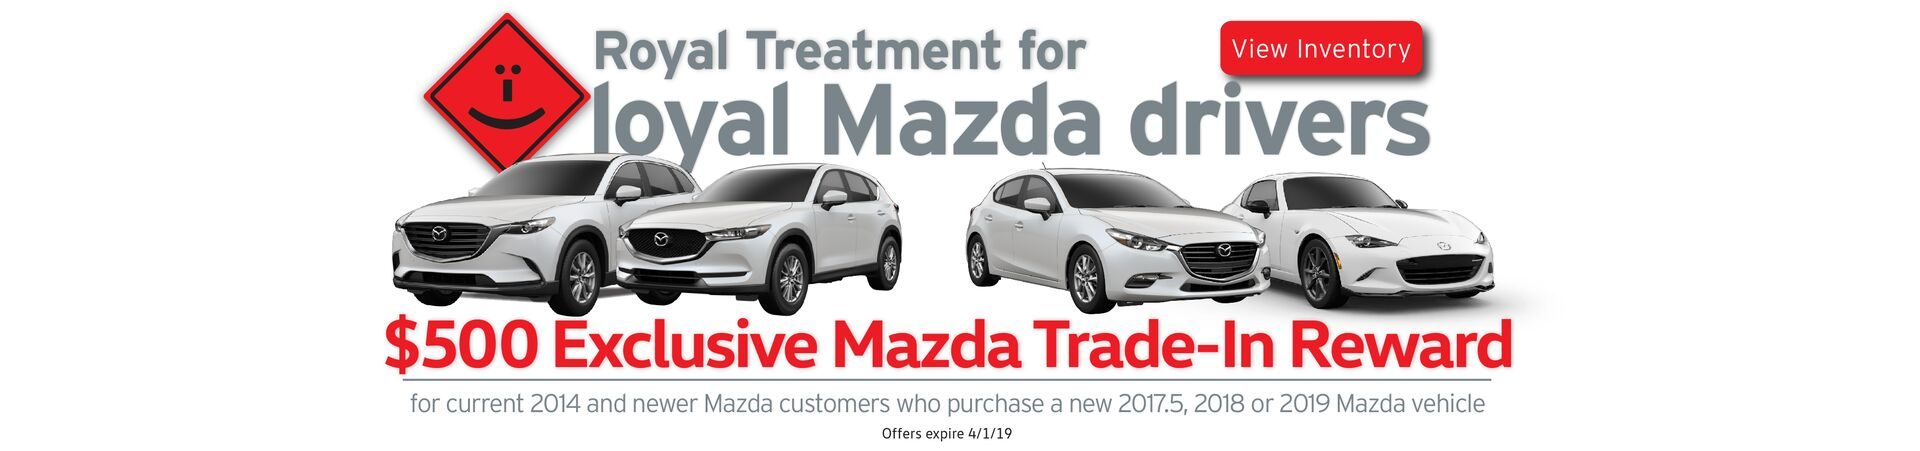 Awesome Mazda $500 Trade In Reward Towards New Mazda